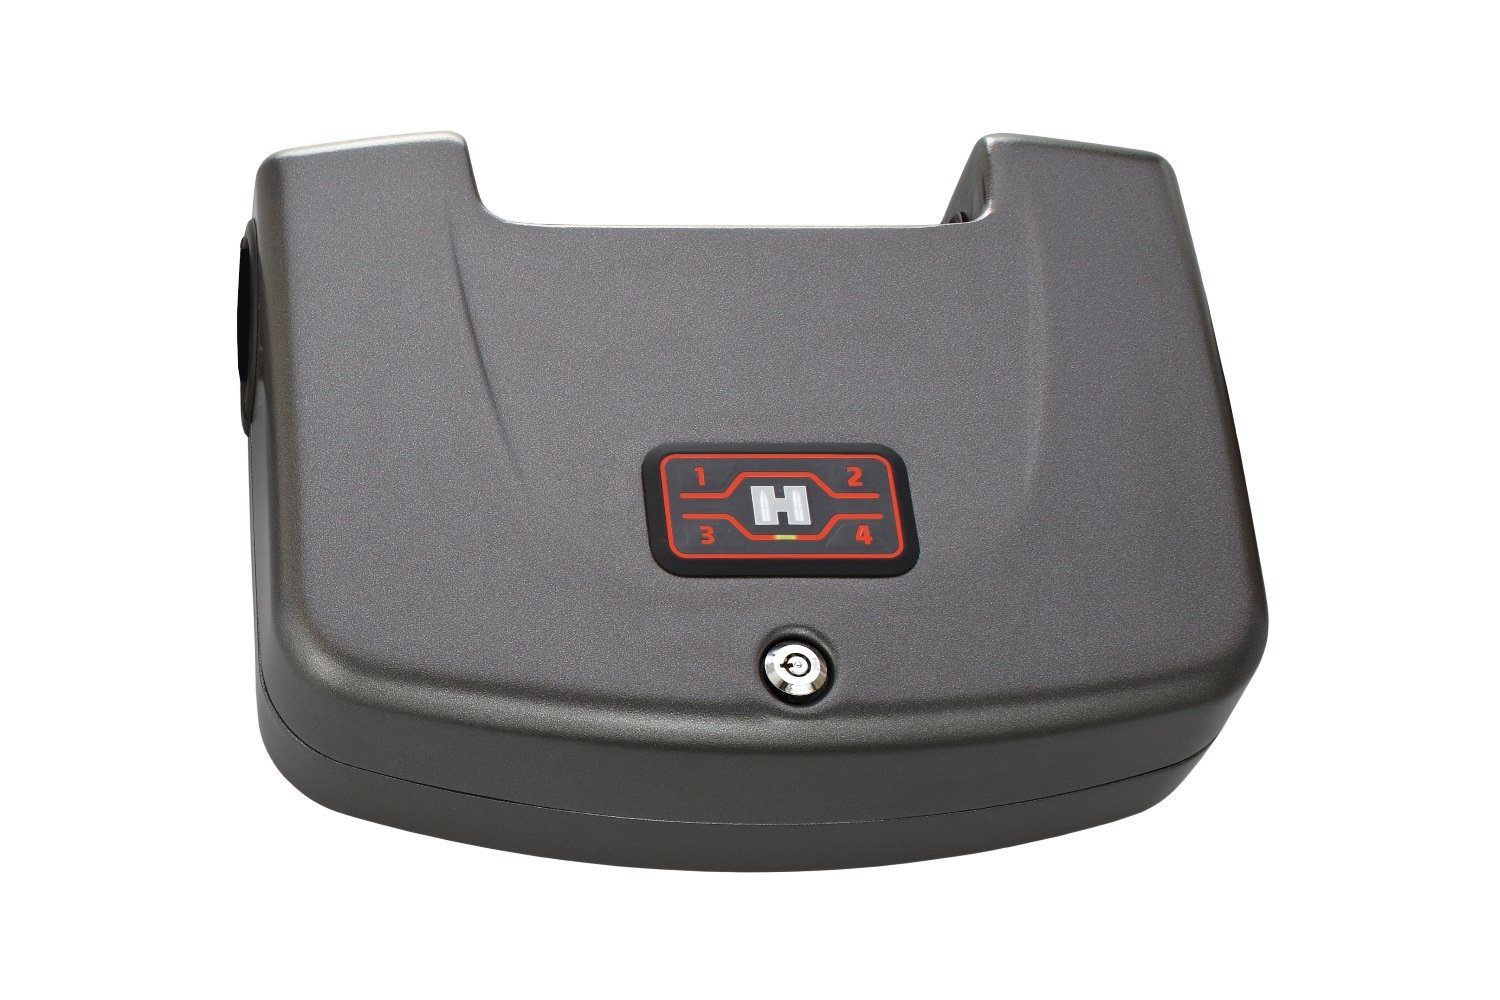 Hornady RAPiD Safe AR Wall Lock RFID, Provide Secure Firearm Storage, Touch-Free Entry, Measures 15'' x 11'' x 3'' by Hornady